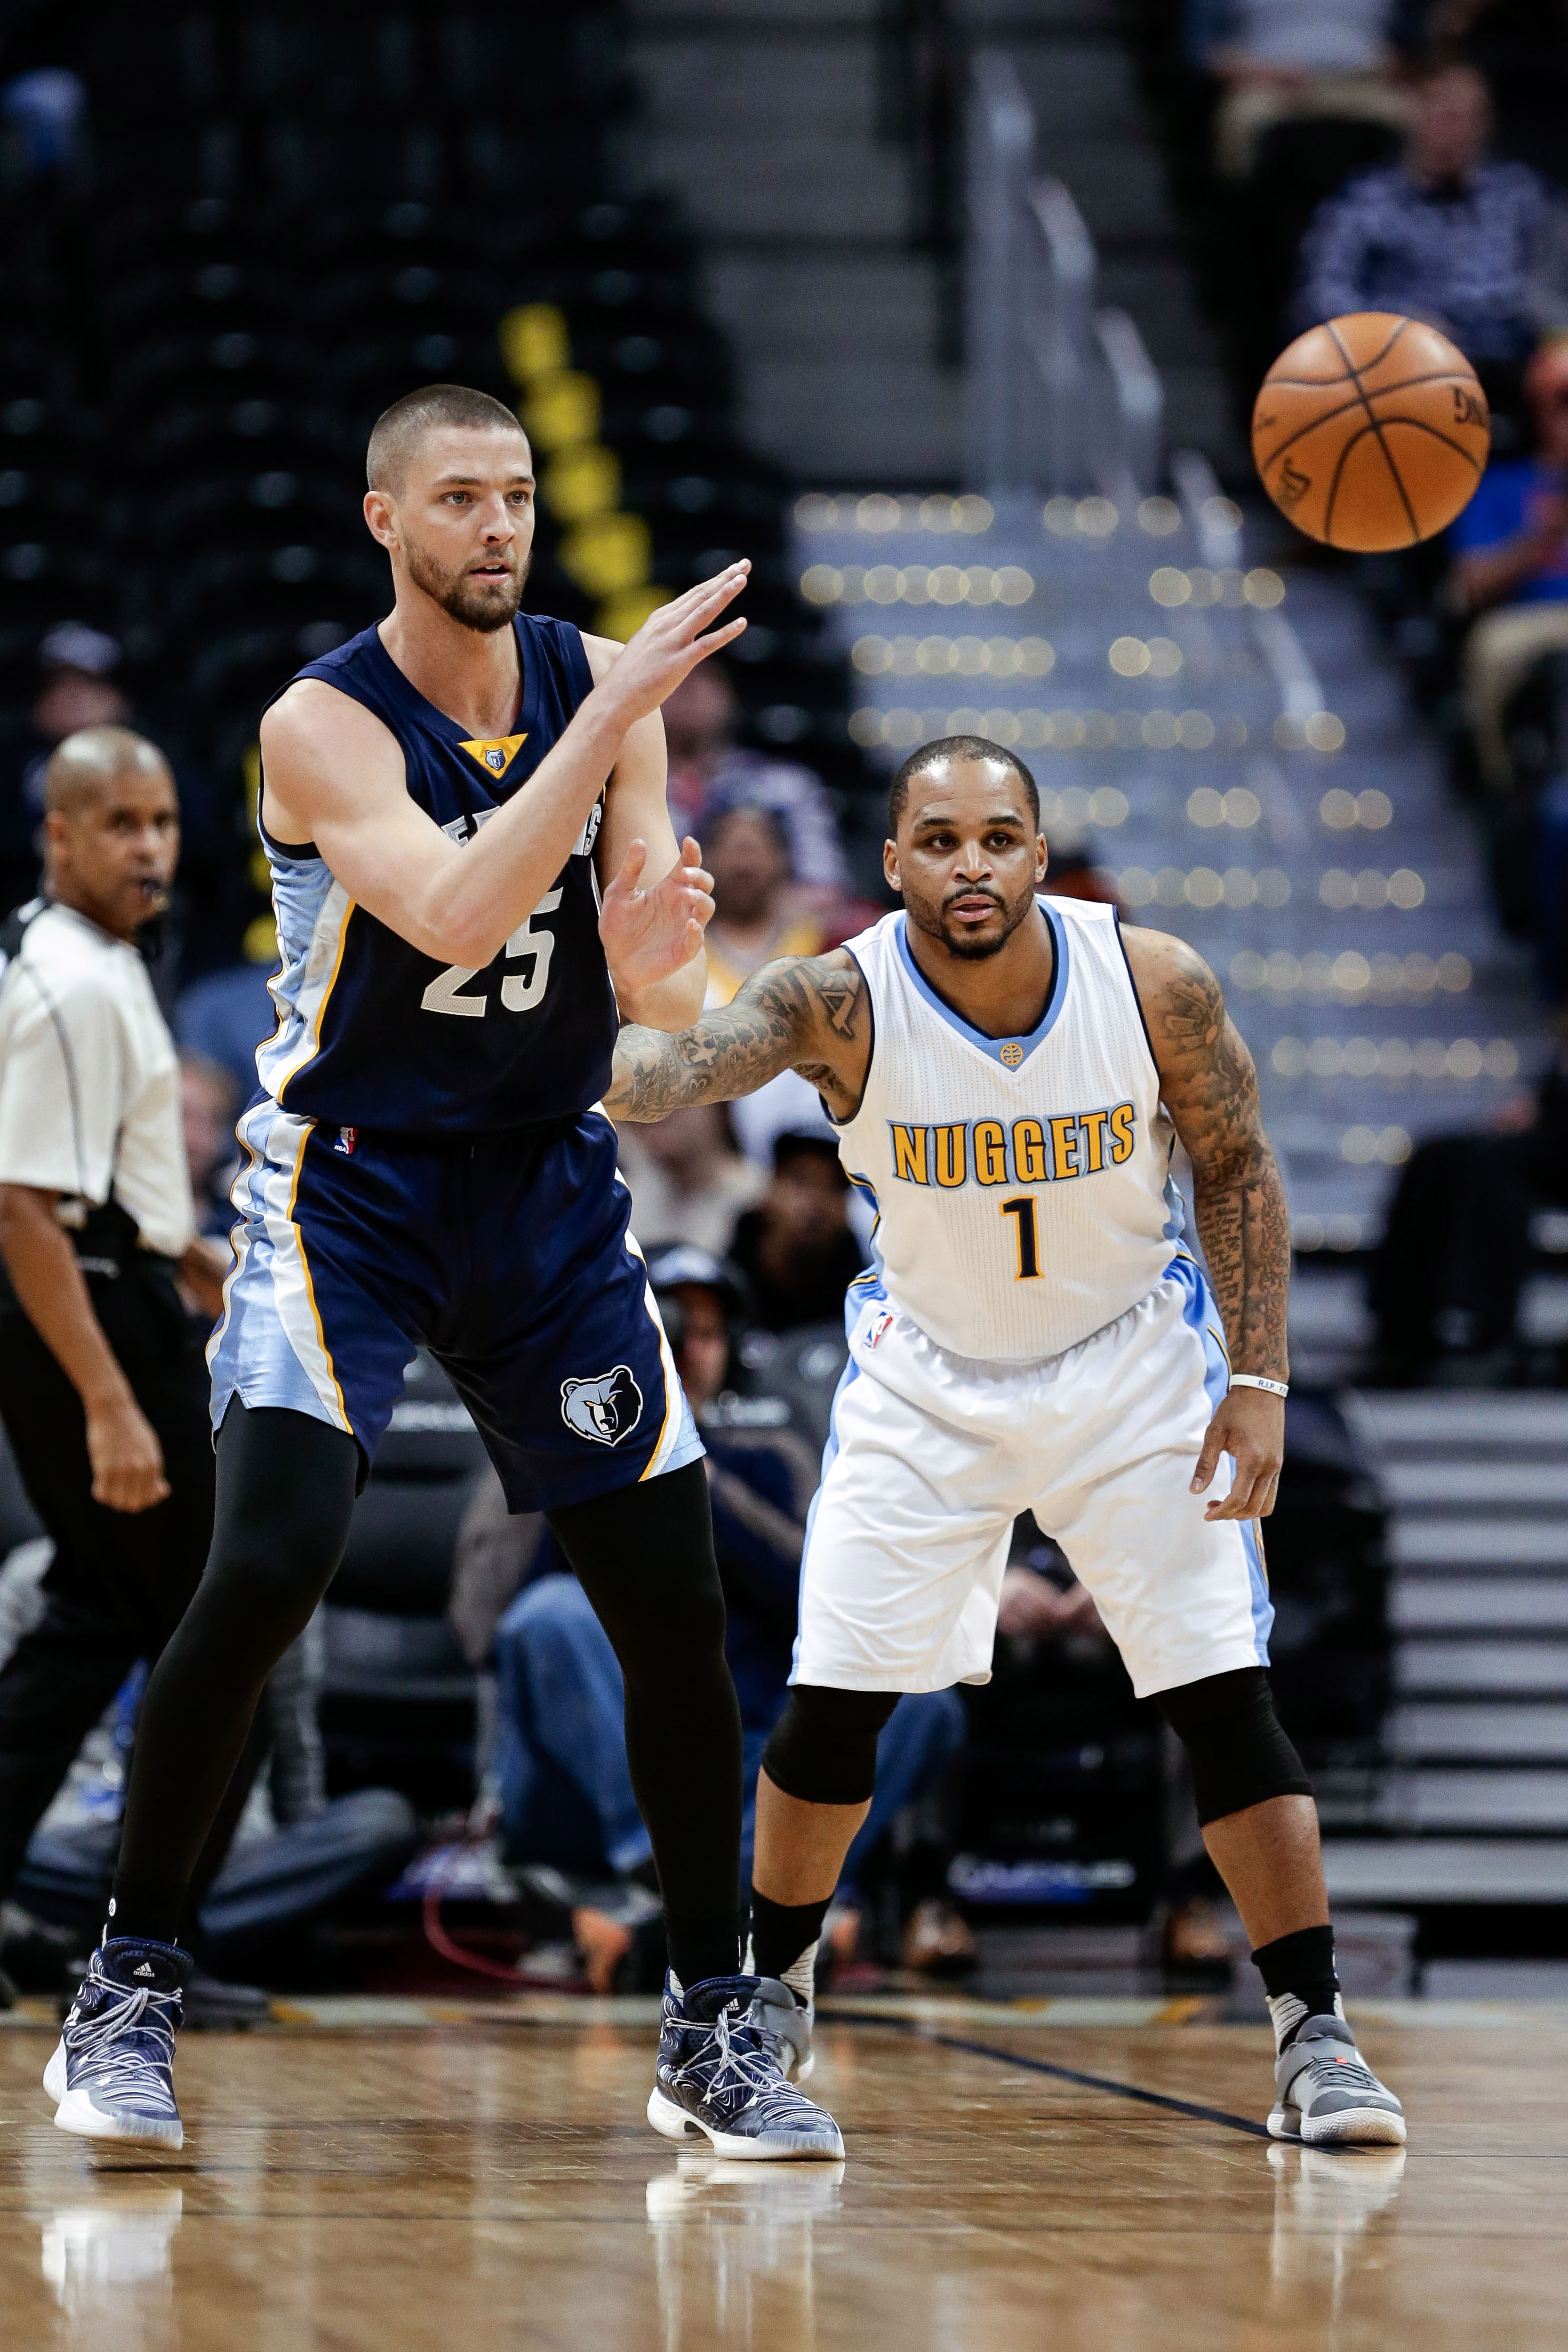 Feb 1, 2017; Denver, CO, USA; Denver Nuggets guard Jameer Nelson (1) guards Memphis Grizzlies forward Chandler Parsons (25) in the first quarter at the Pepsi Center. Mandatory Credit: Isaiah J. Downing-USA TODAY Sports